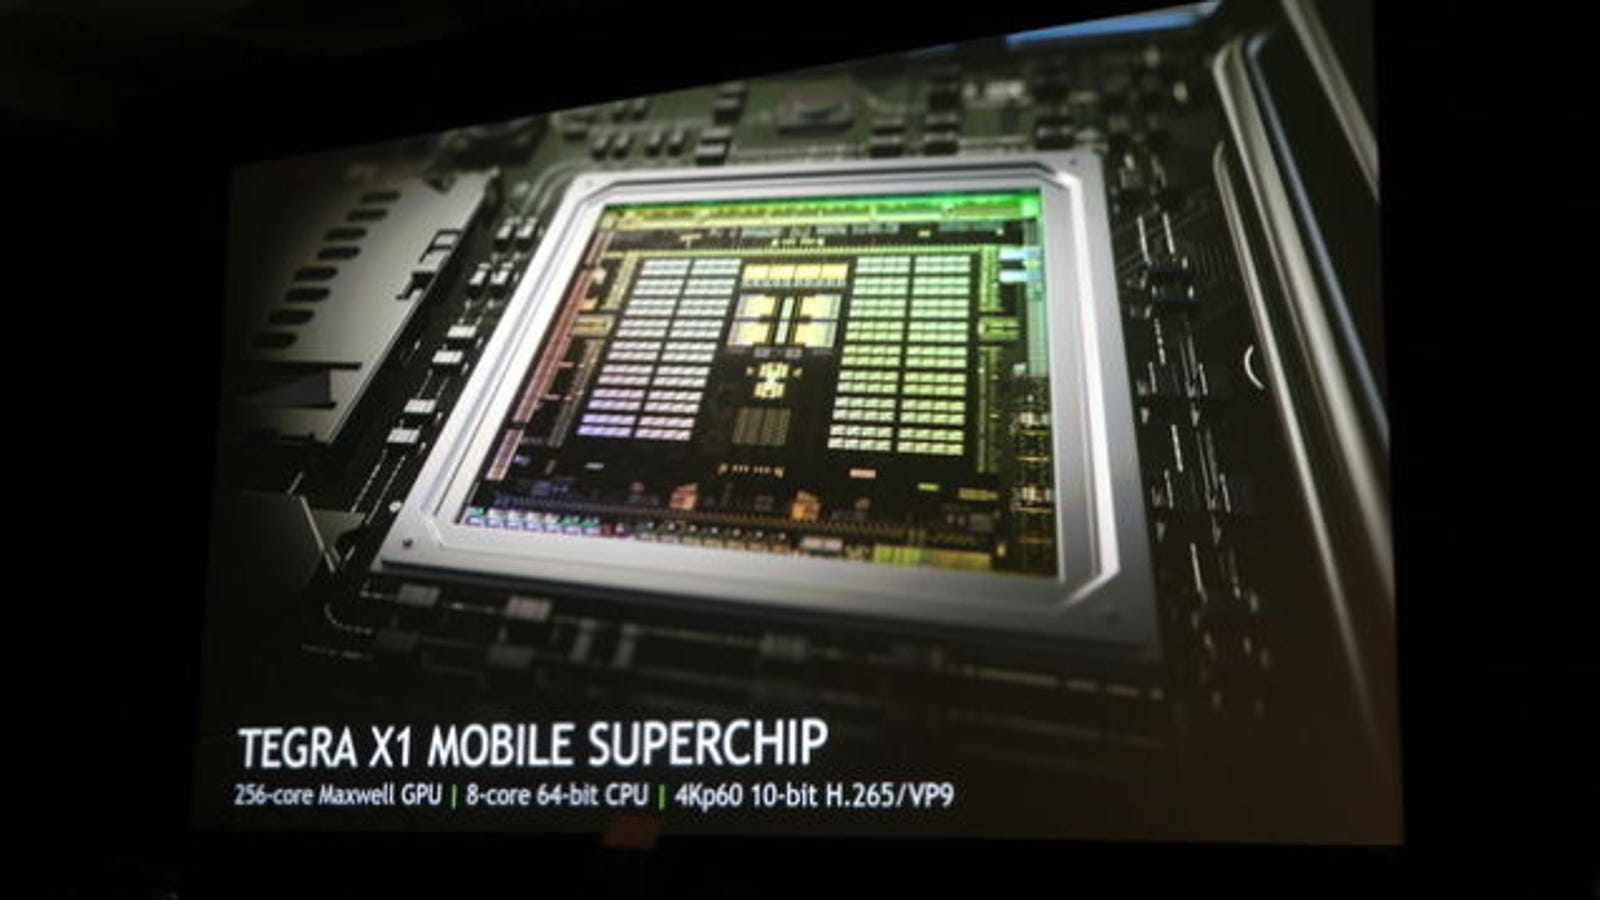 Tegra X1: Incredible Mobile Graphics For Driving Your Games